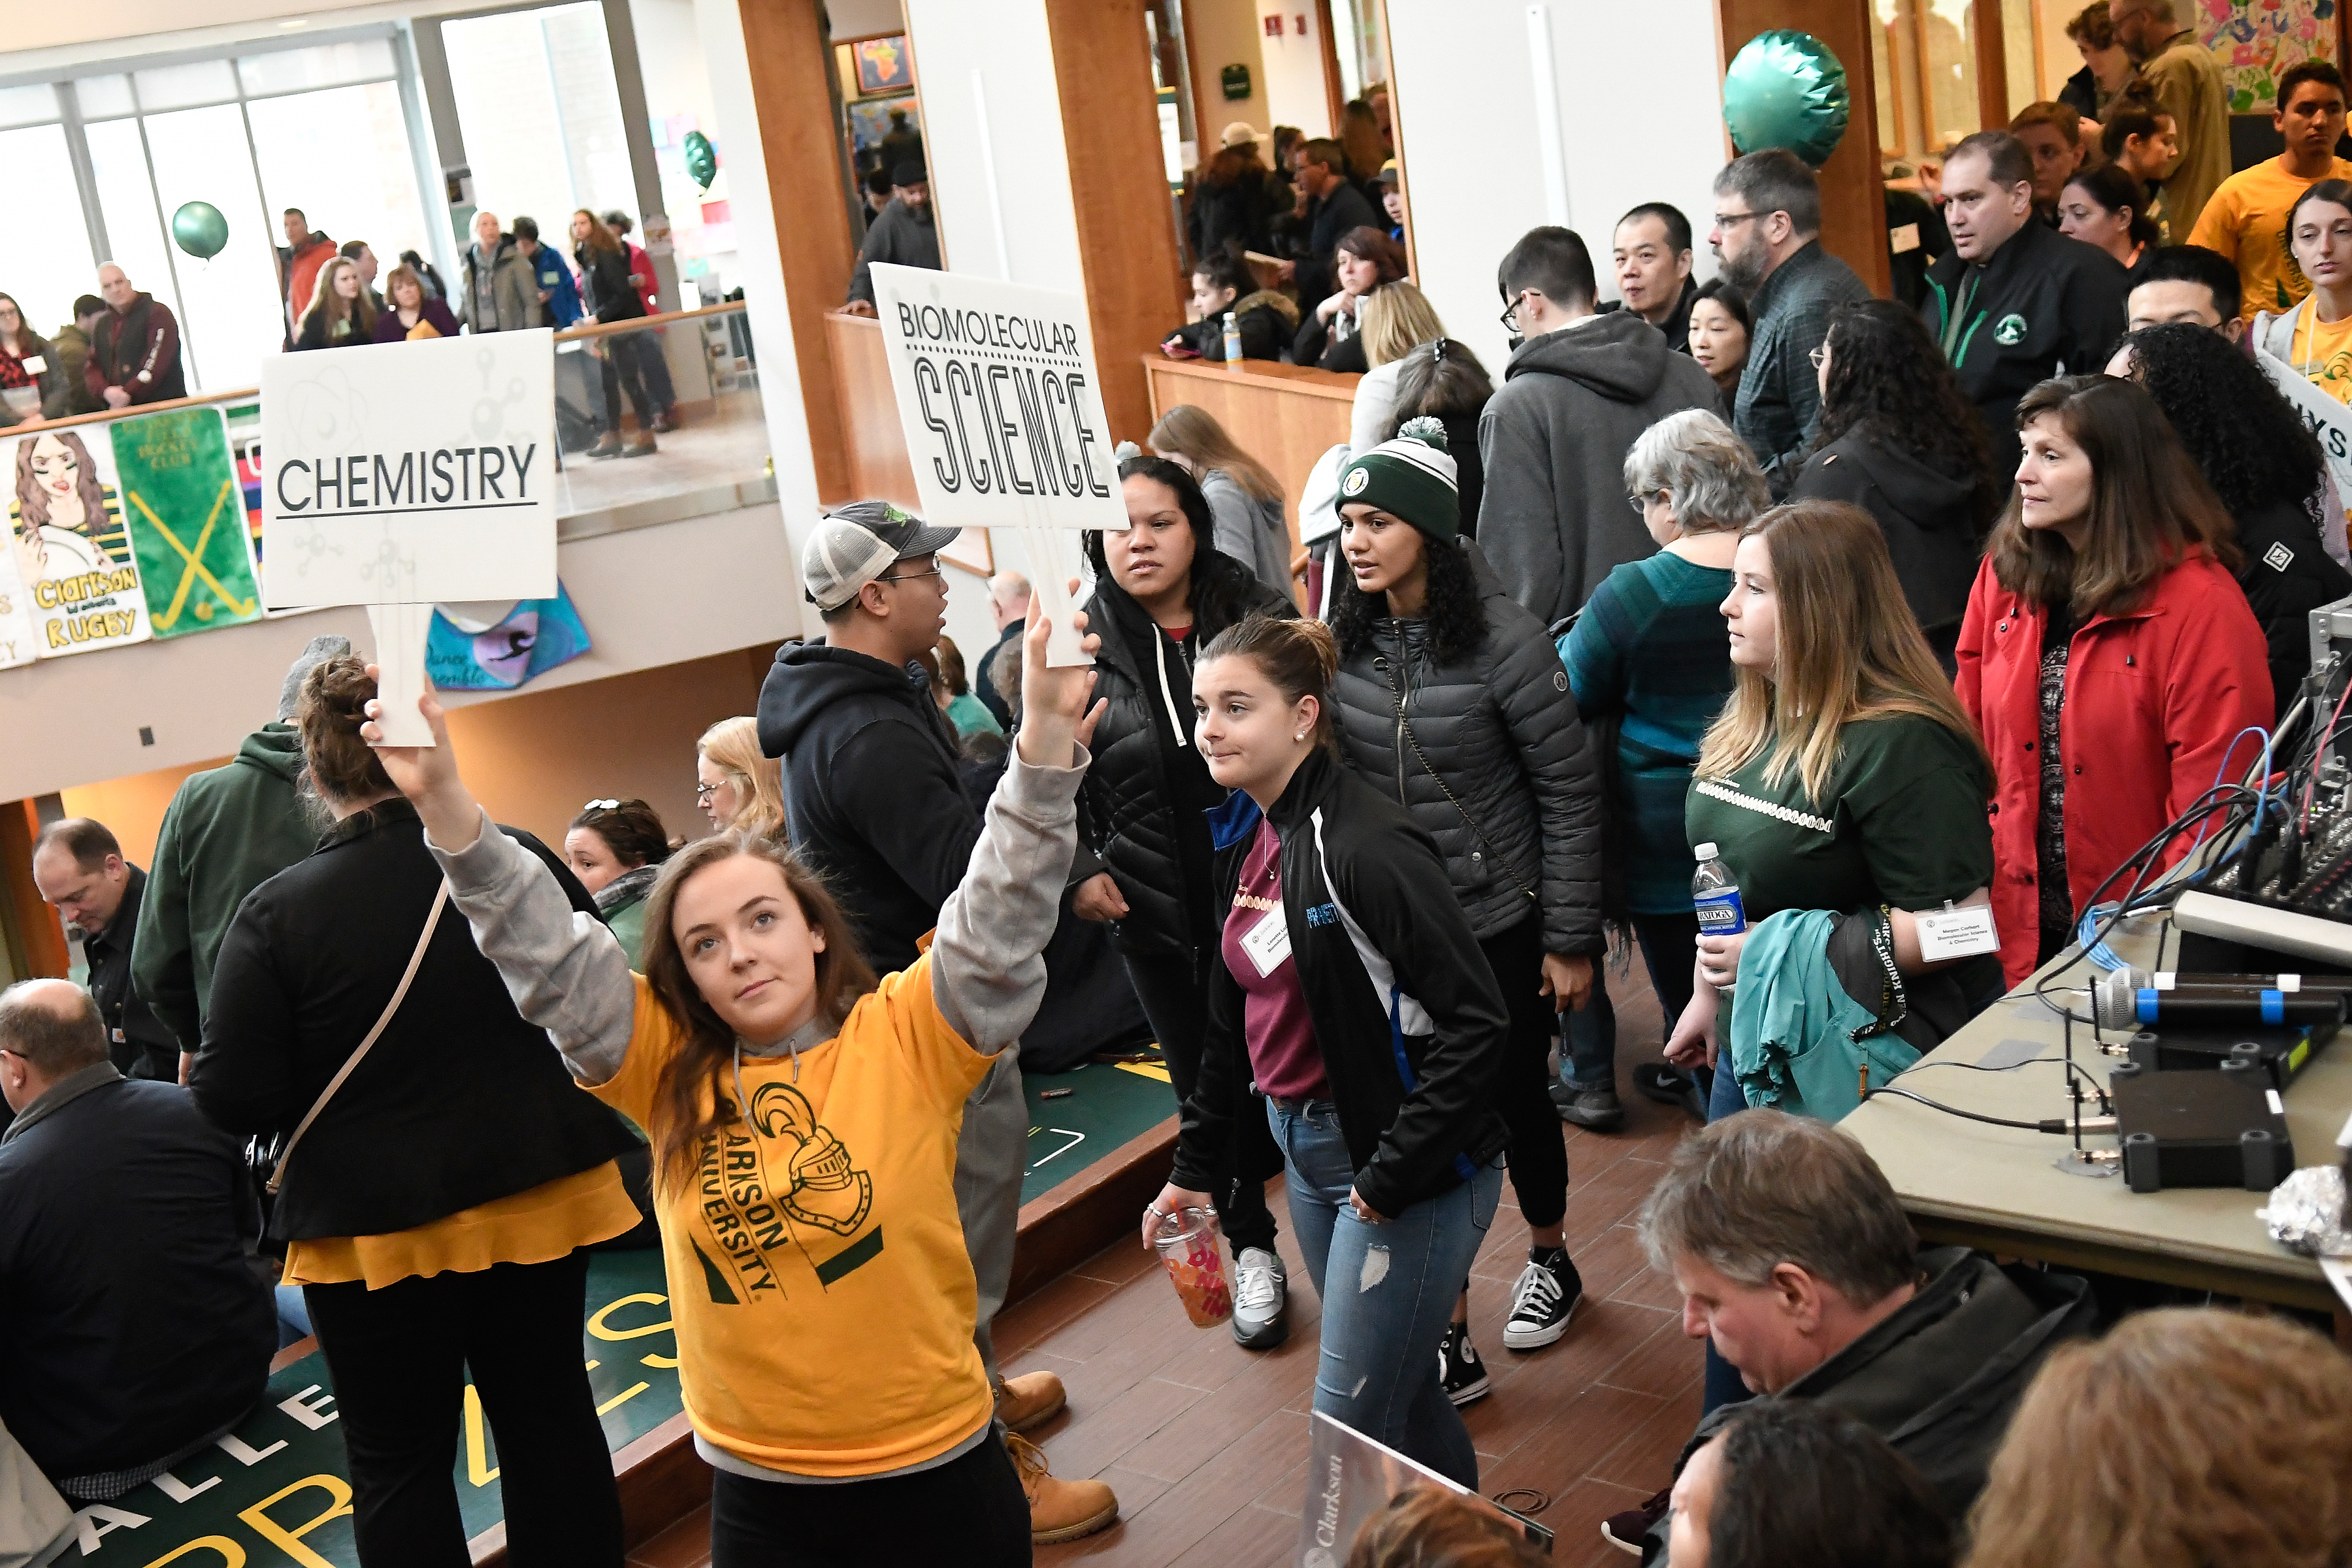 Clarkson University hosts several undergraduate admissions events throughout the year, including Accepted Students Day, of which a crowd from this event is shown.